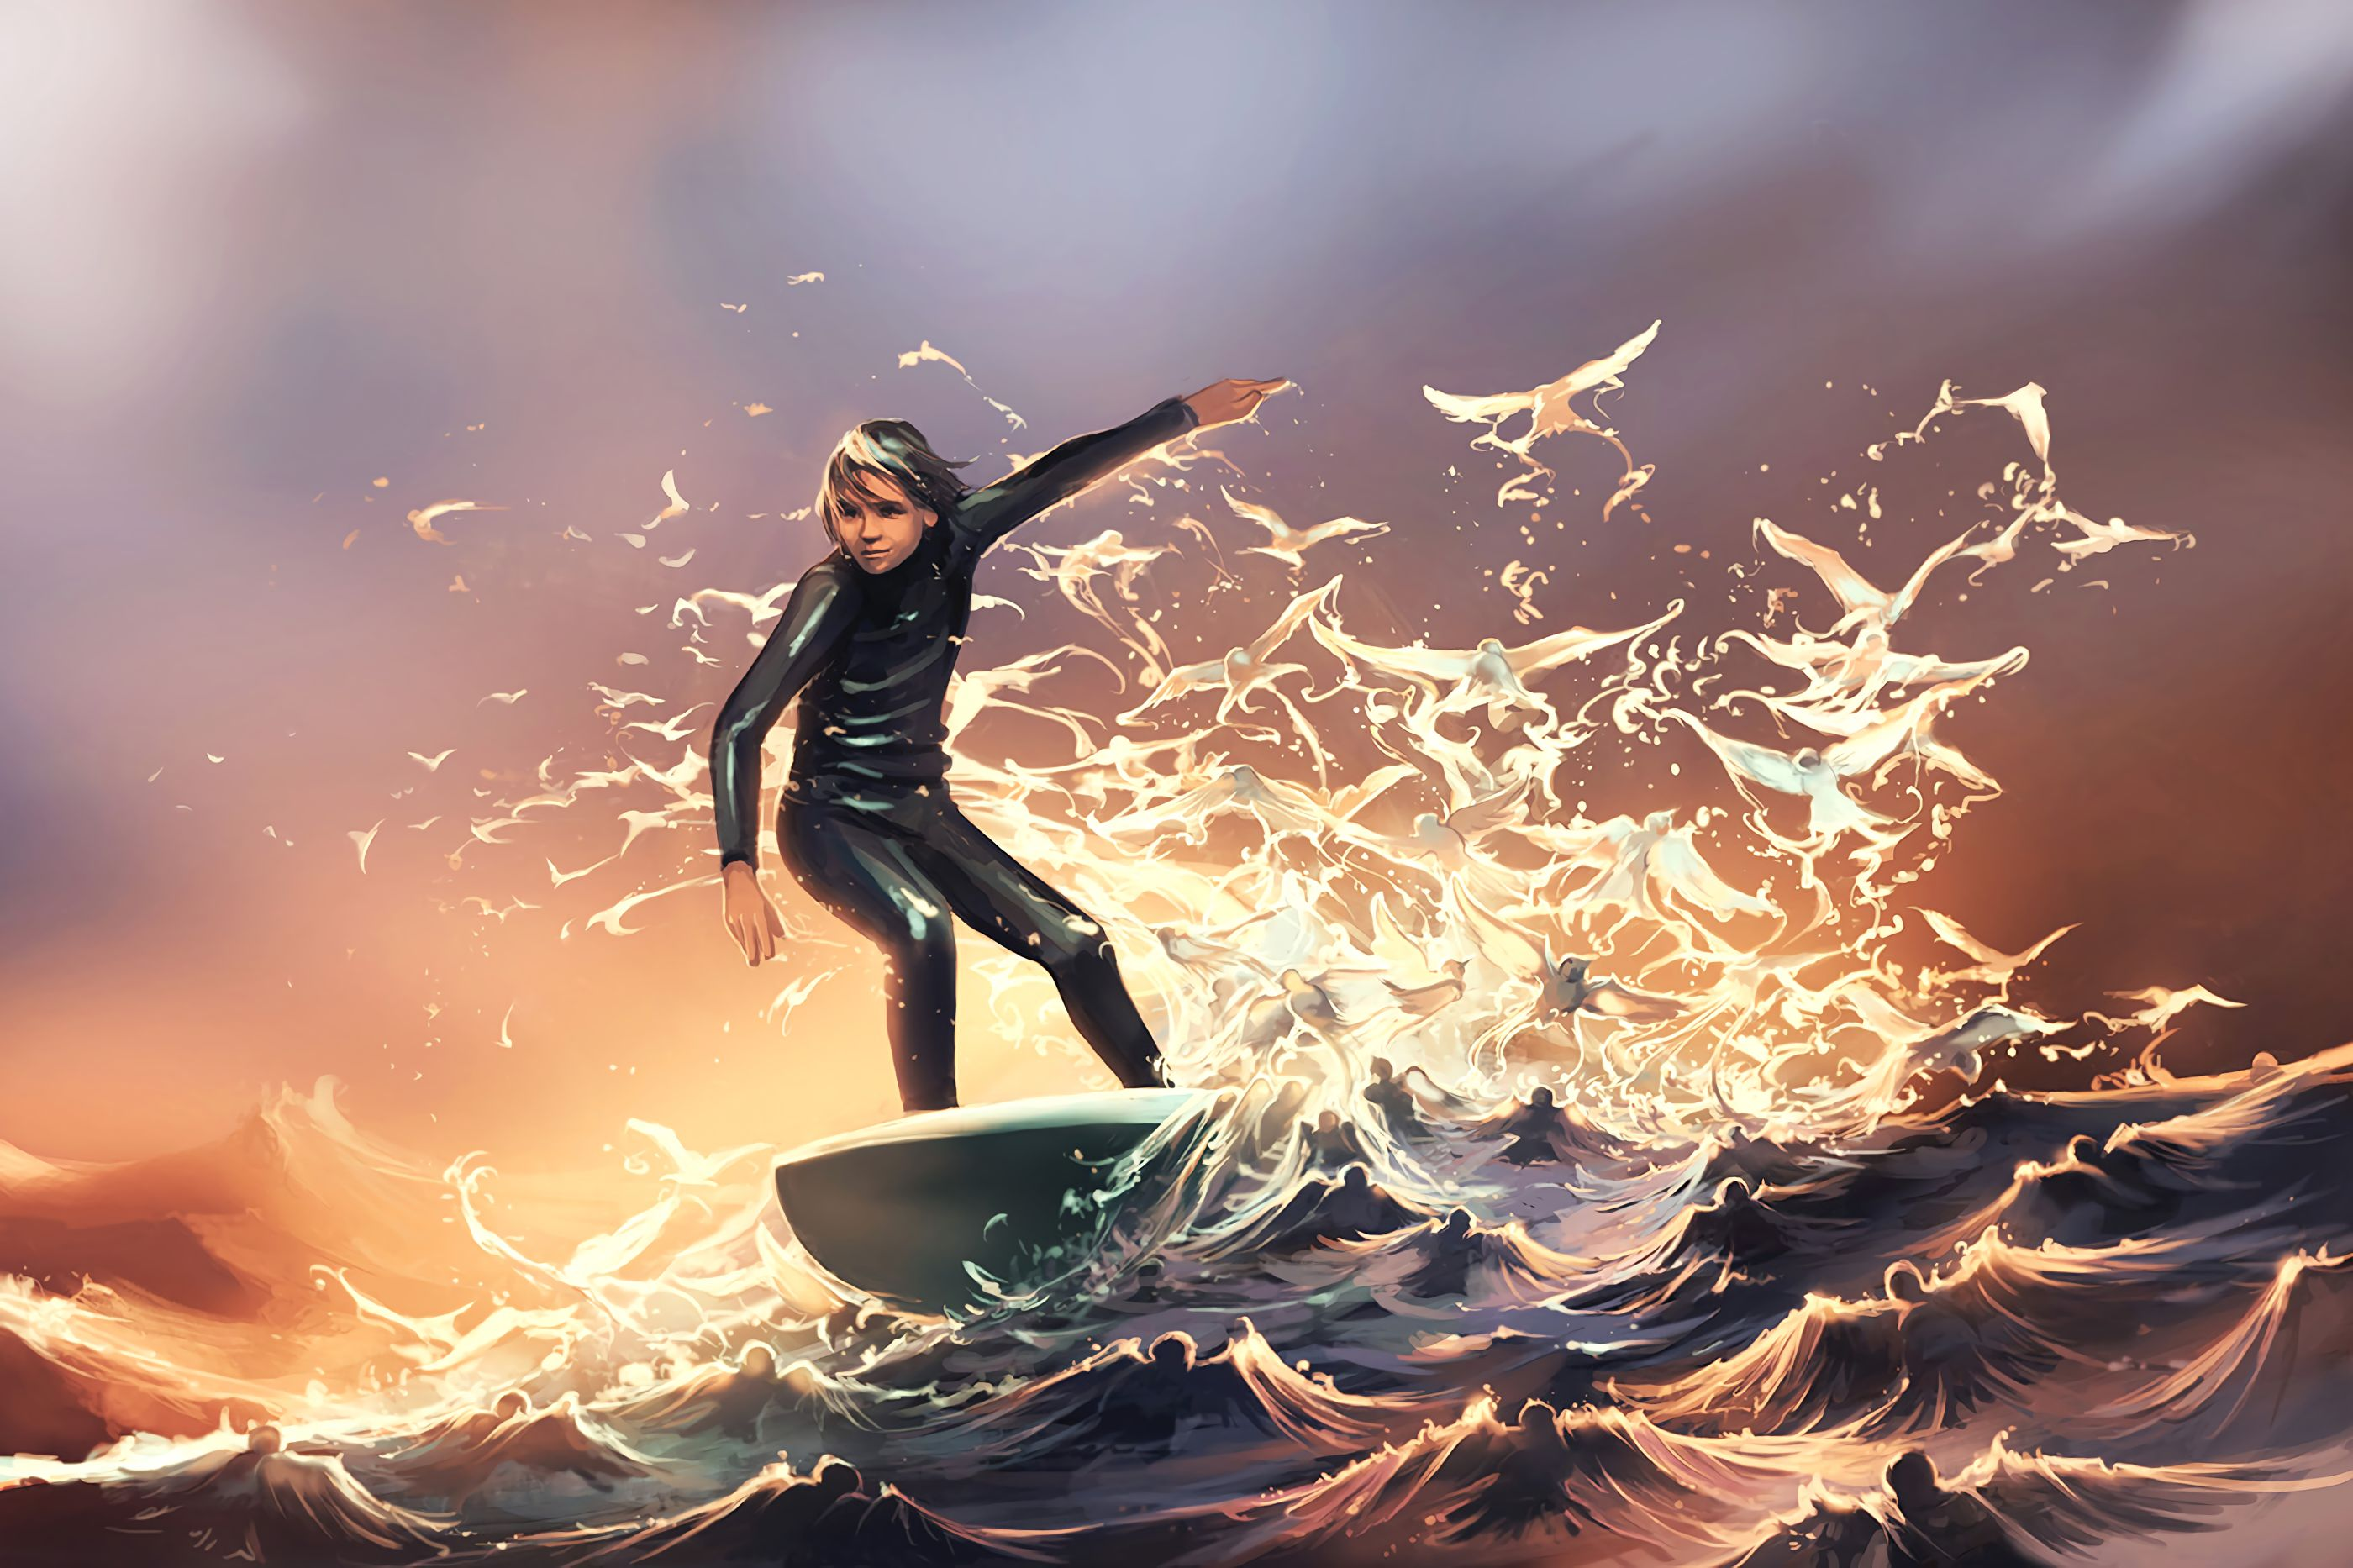 79399 download wallpaper Surfer, Serfing, Guy, Art, Waves screensavers and pictures for free